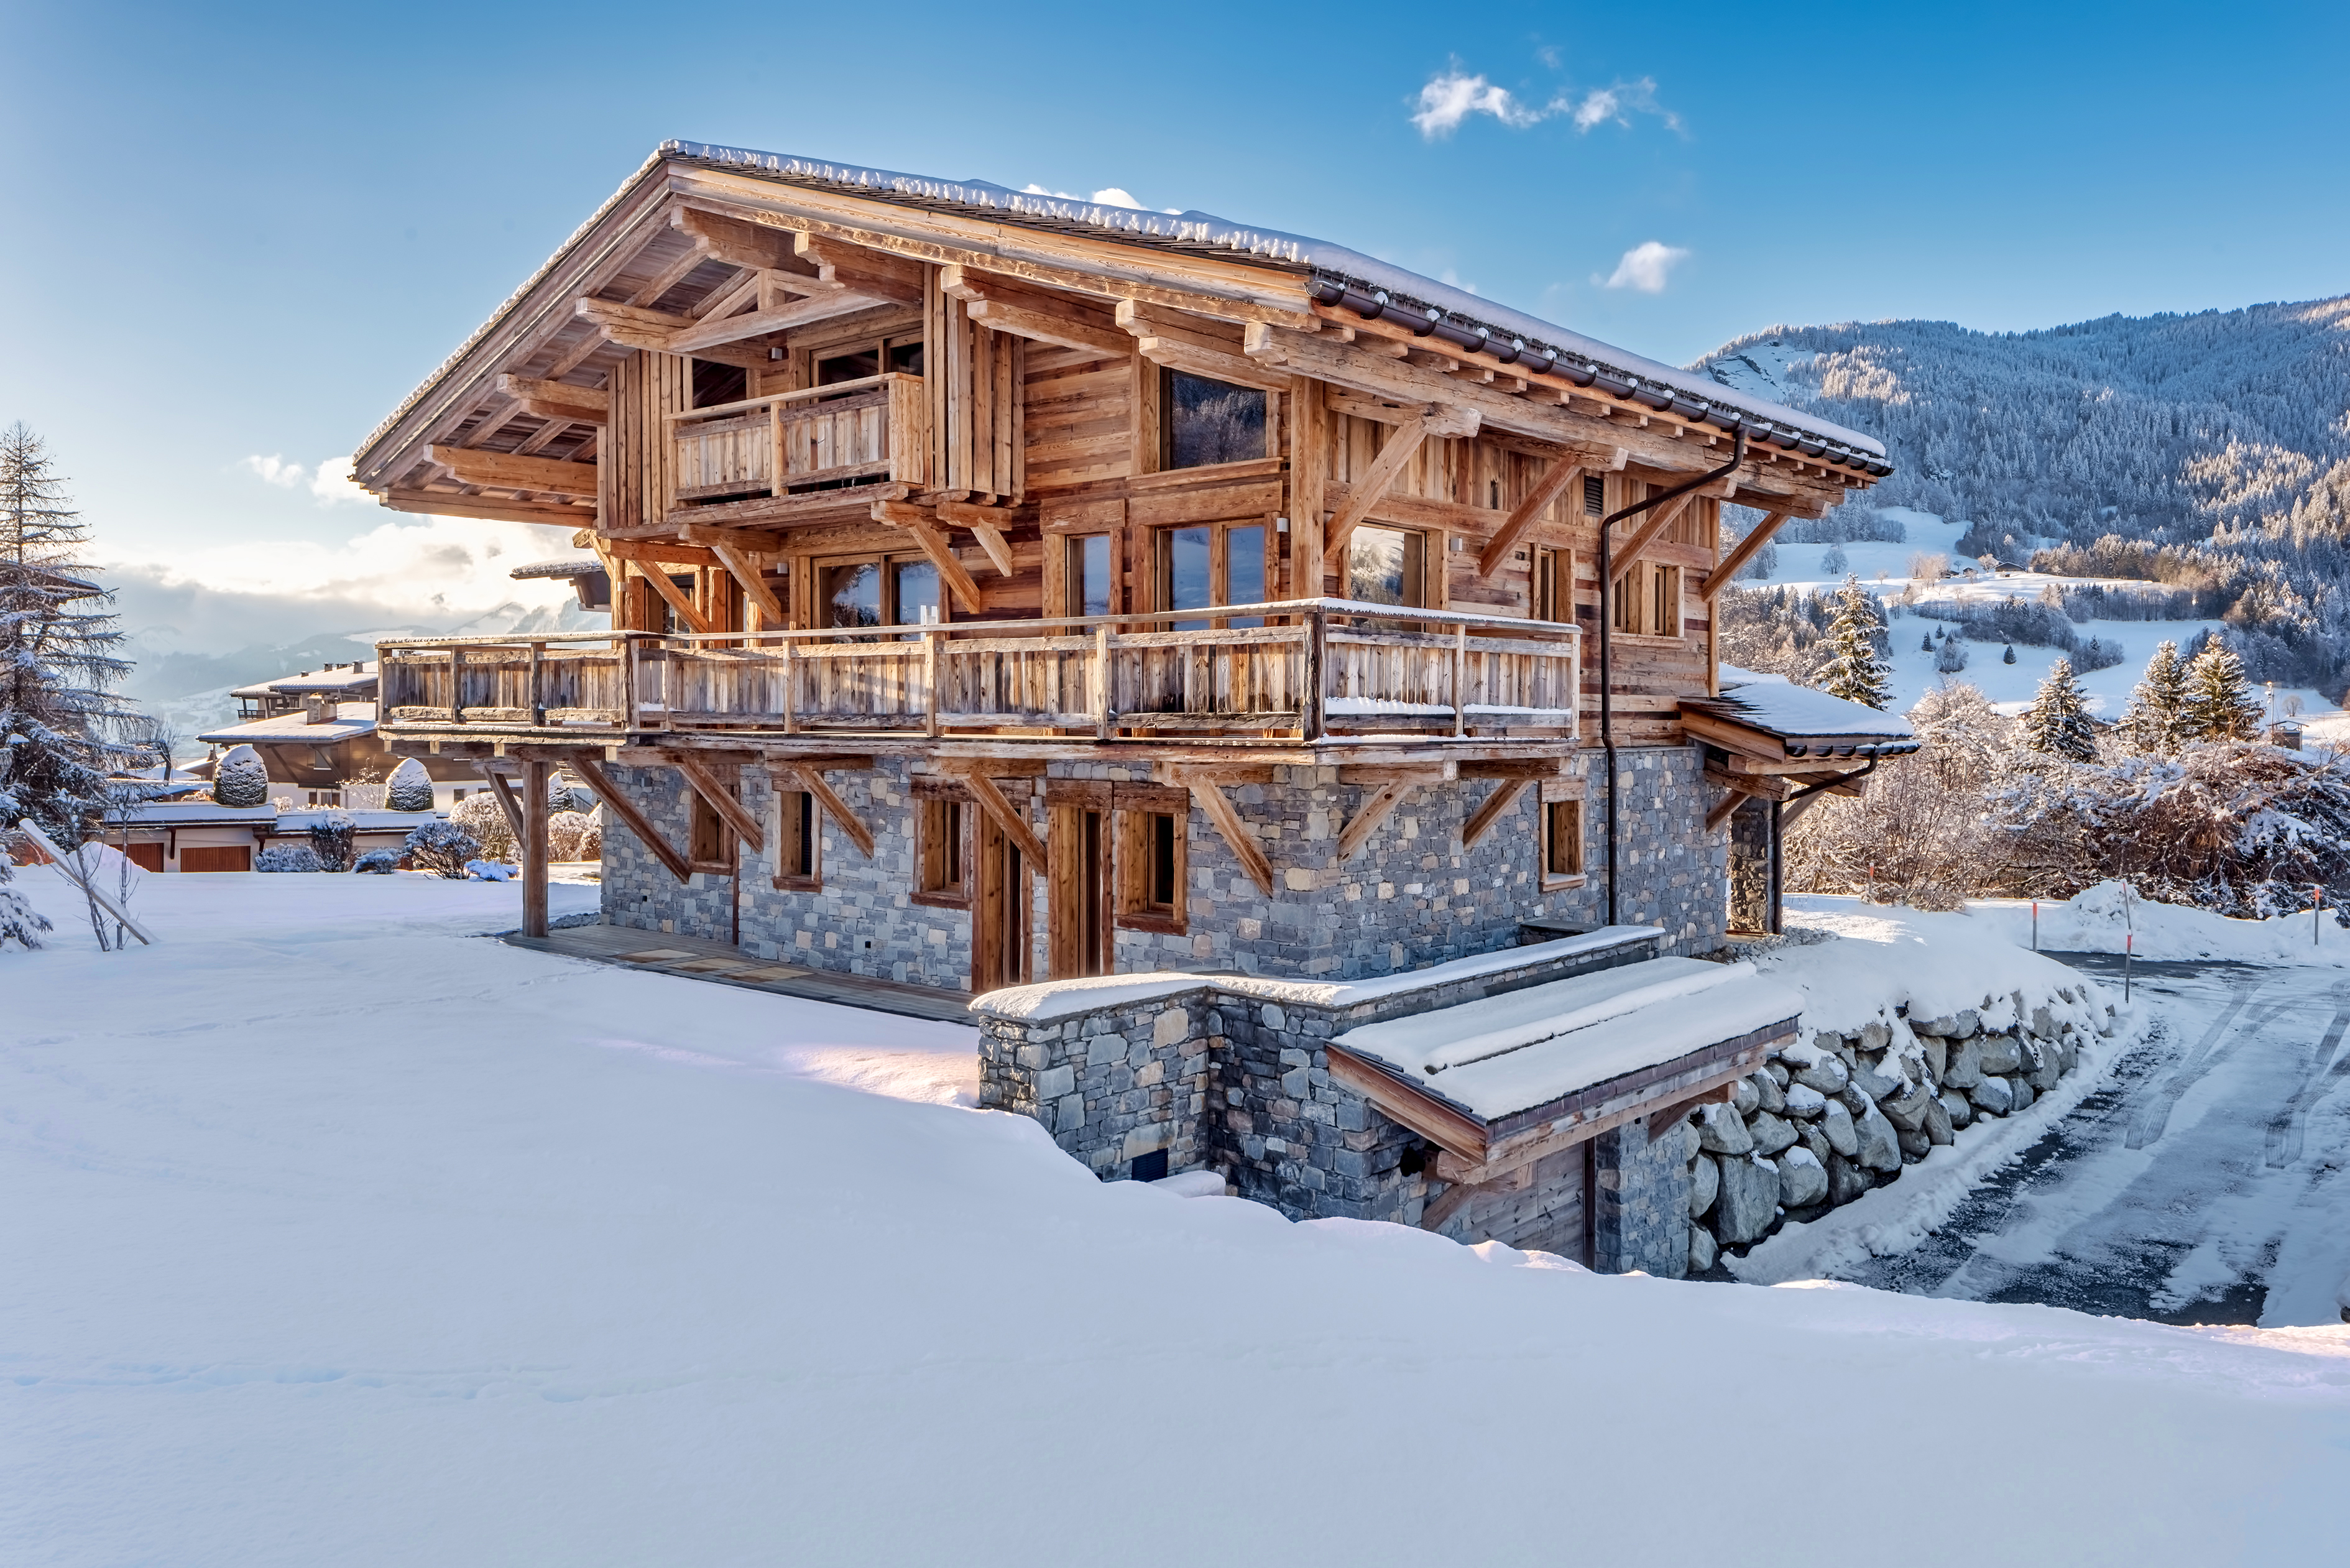 Six stunning ski chalets on the market now, with luxurious interiors and spectacular vistas